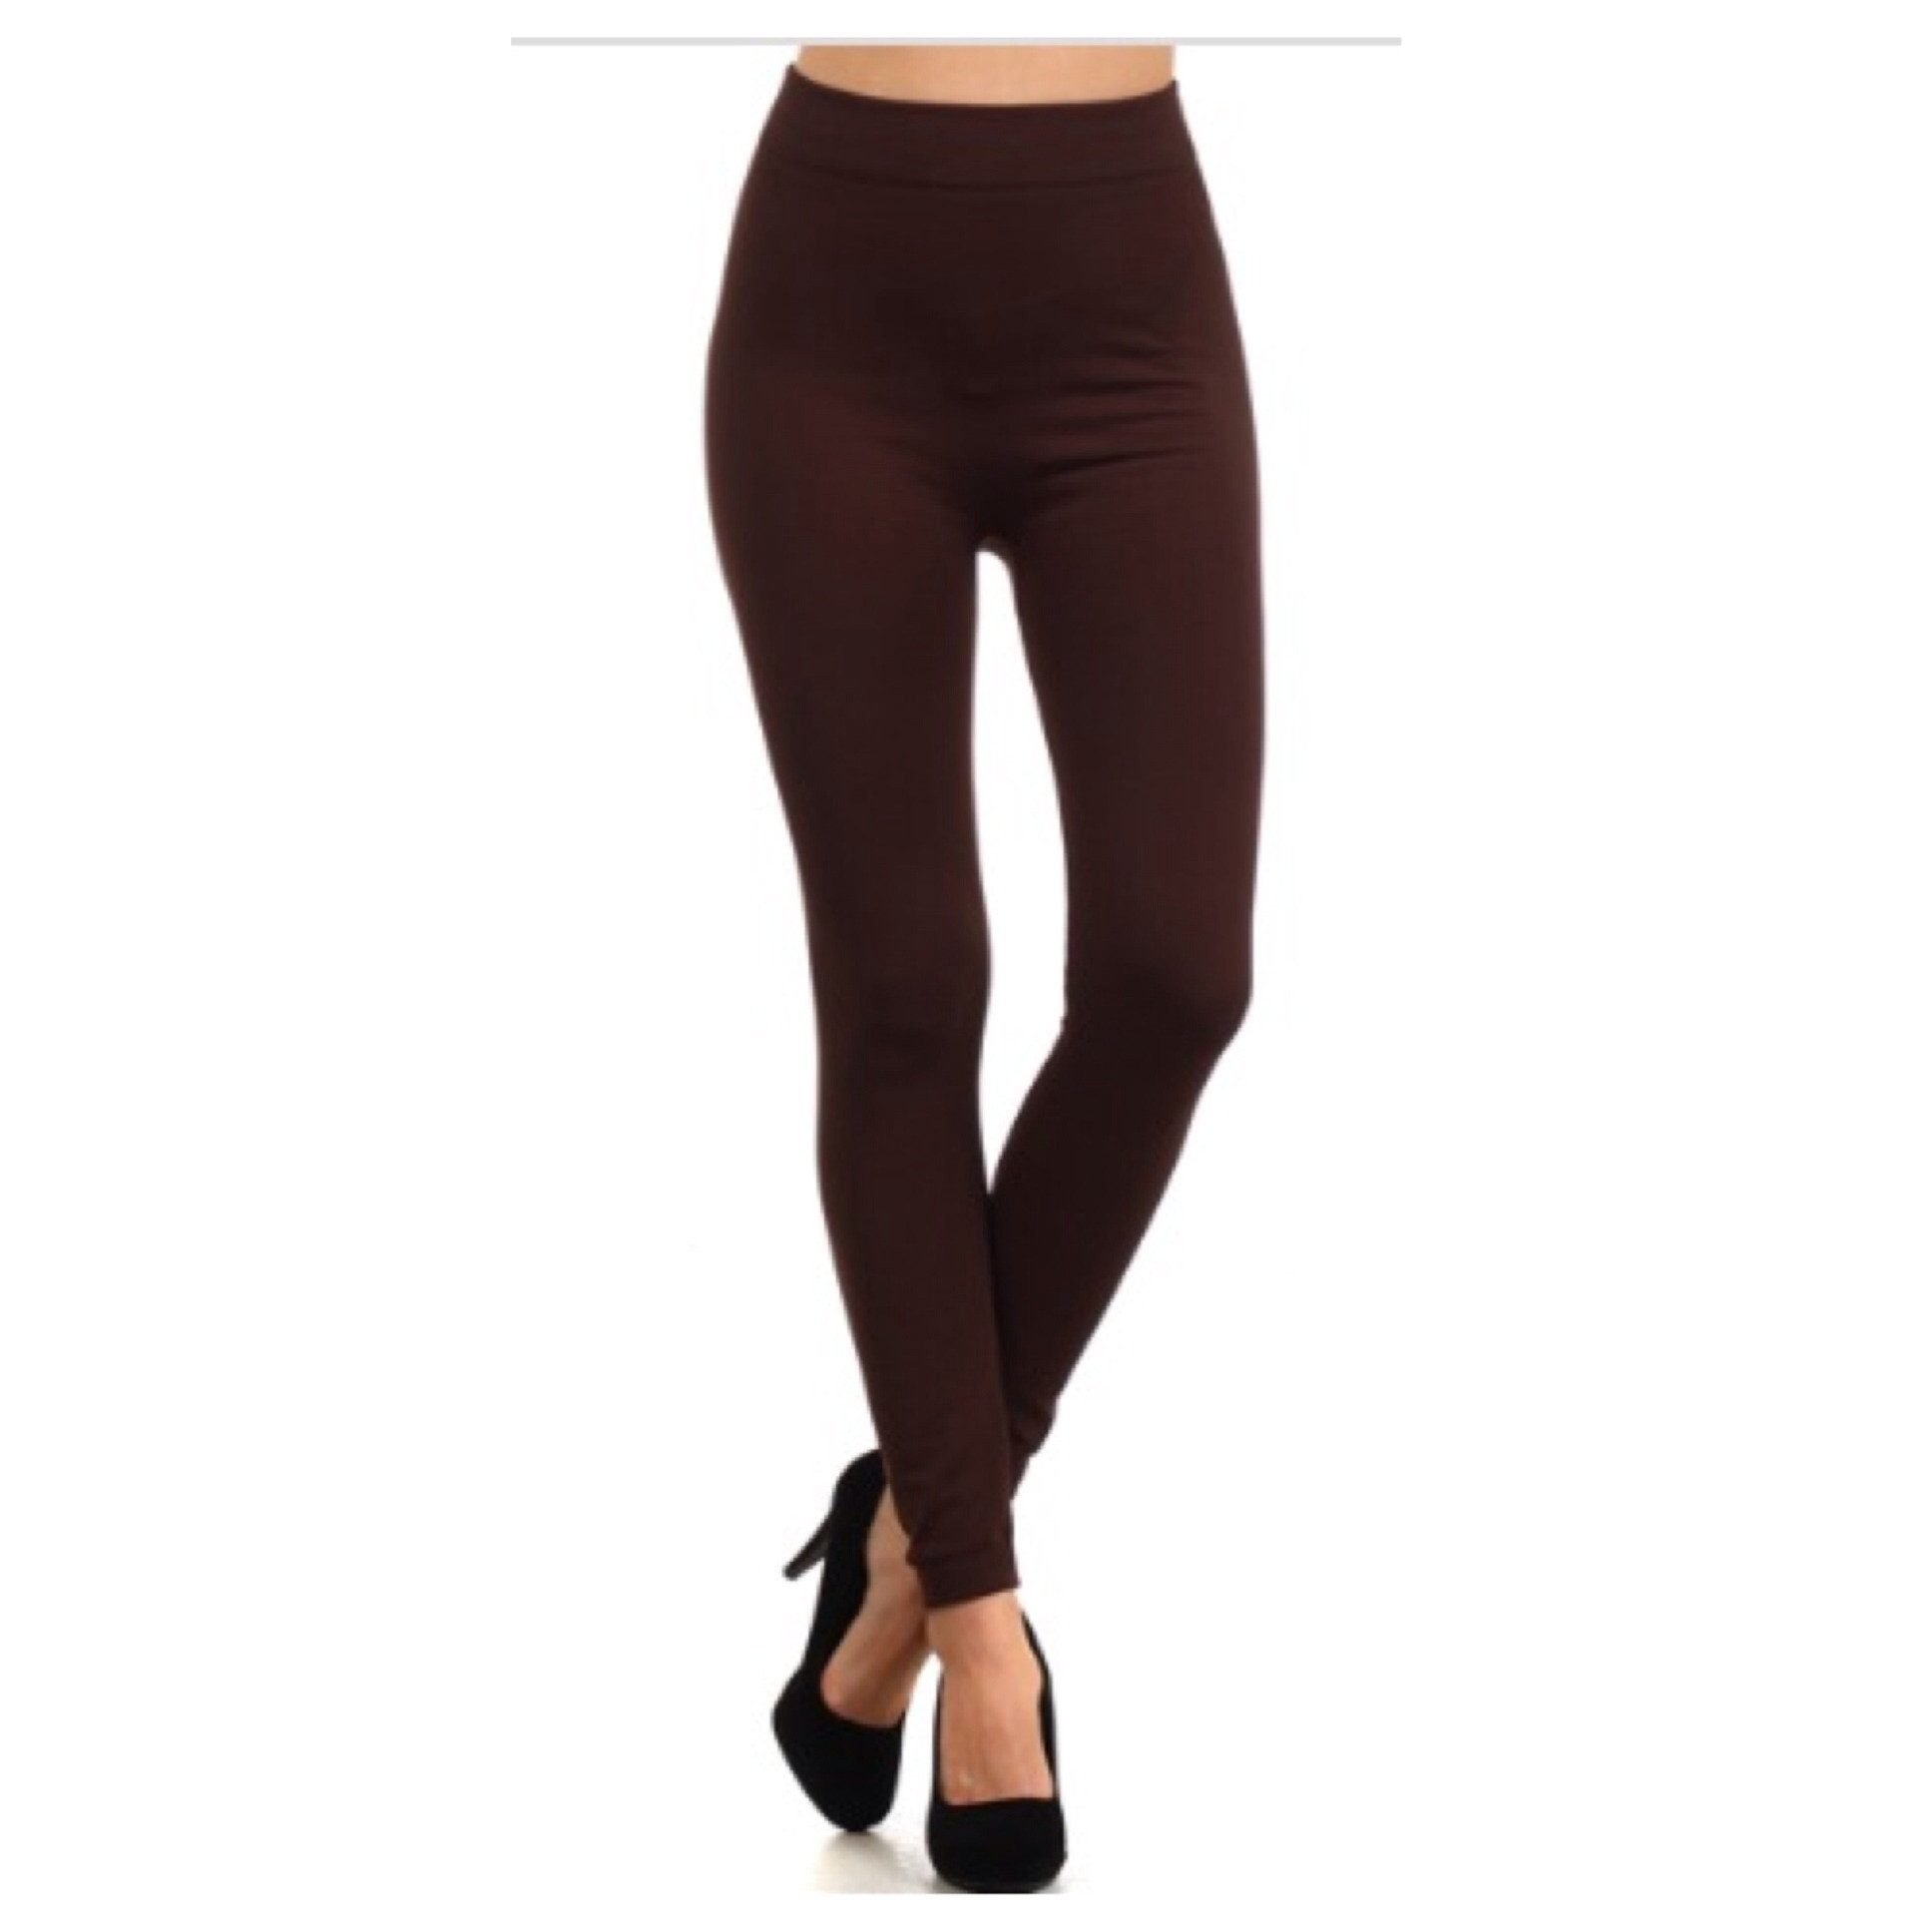 in style fleece lined solid coffee brown leggings ocsznuh